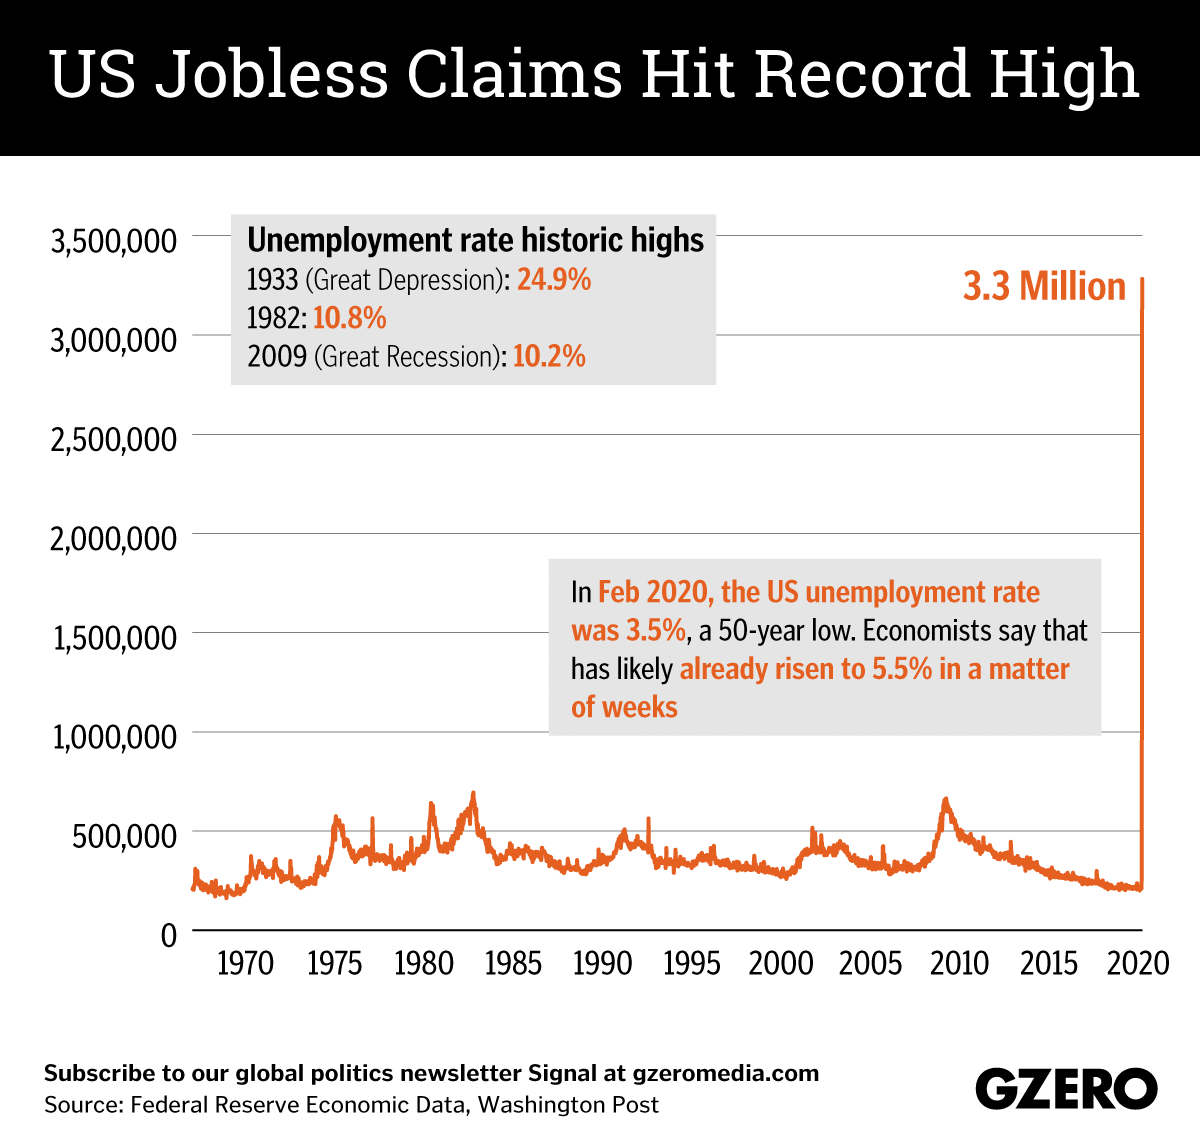 The Graphic Truth: US jobless claims hit record high